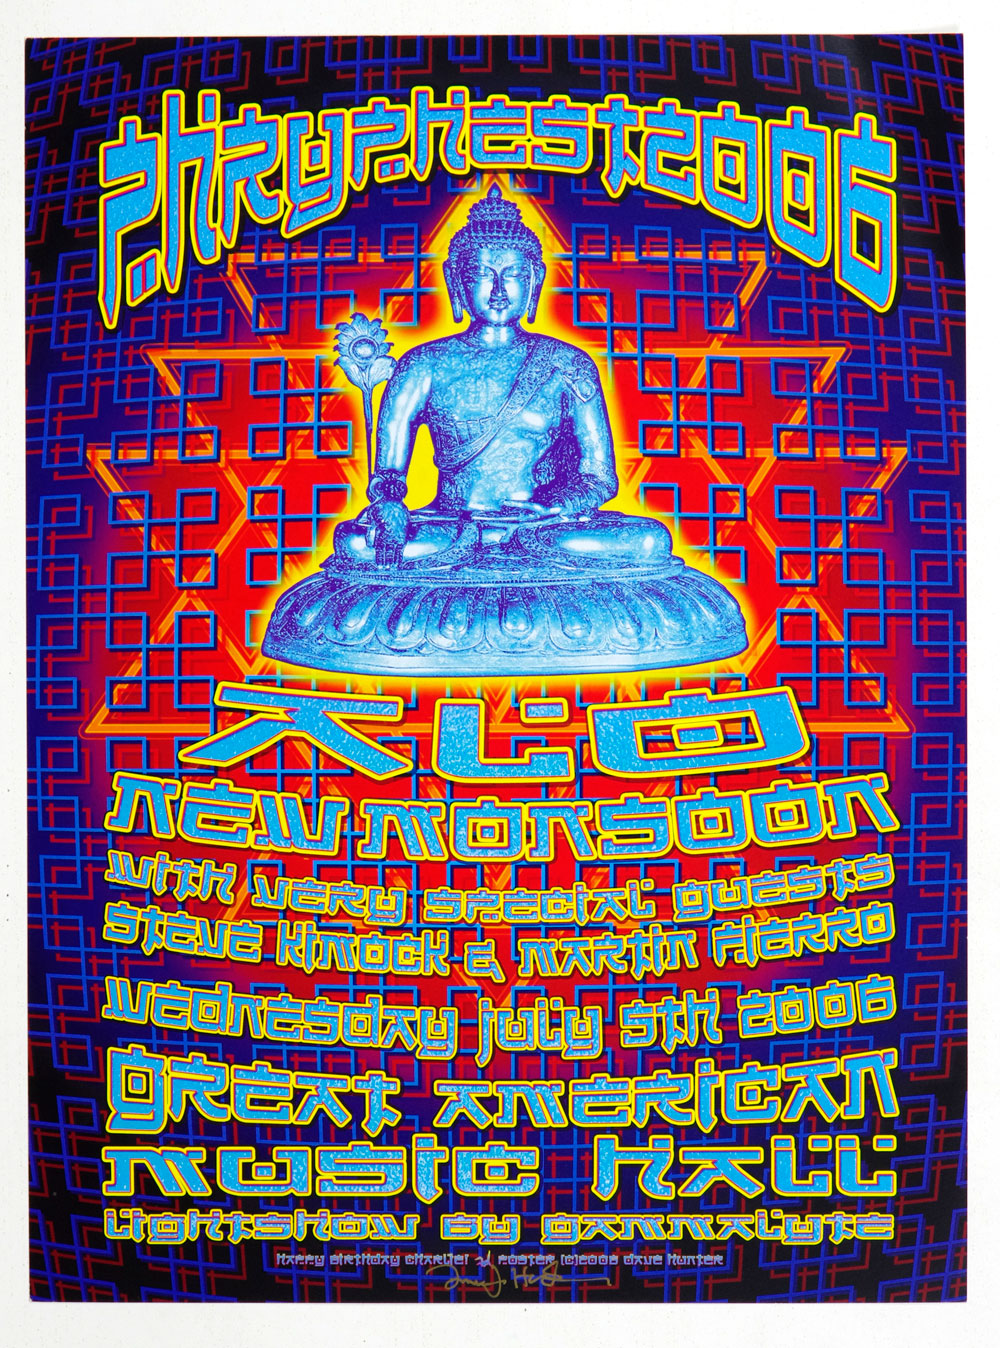 ALO Poster w/ New Monsoon 2006 Jul 5 Great American Music Hall Dave Hunter Signed